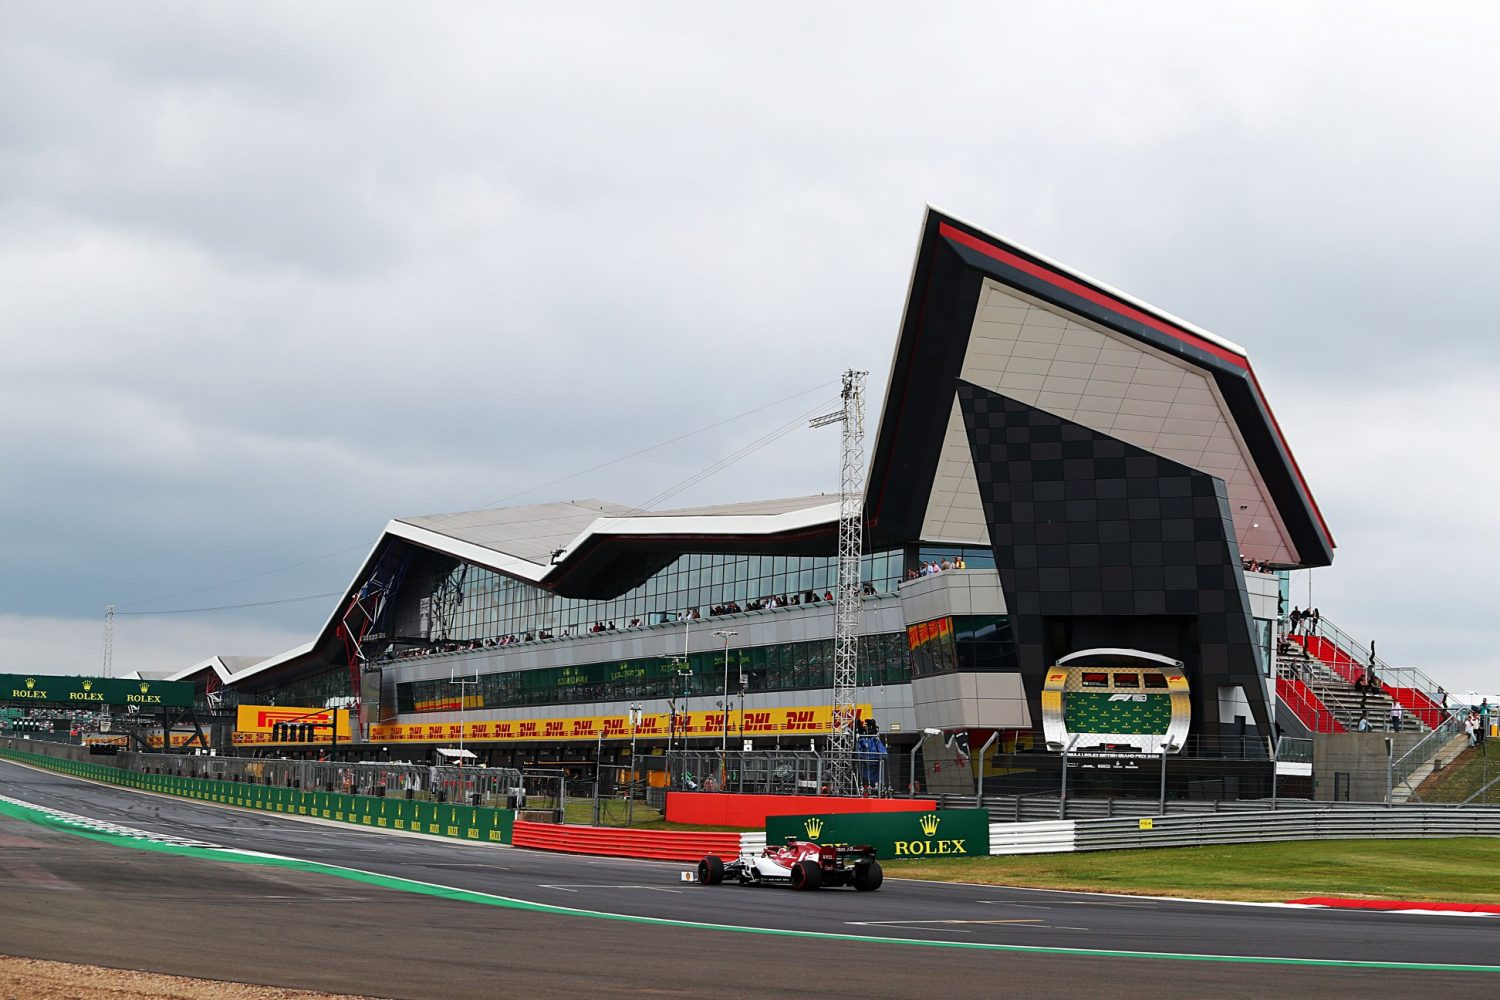 F1 to organize an anti-racism protest in British Grand Prix